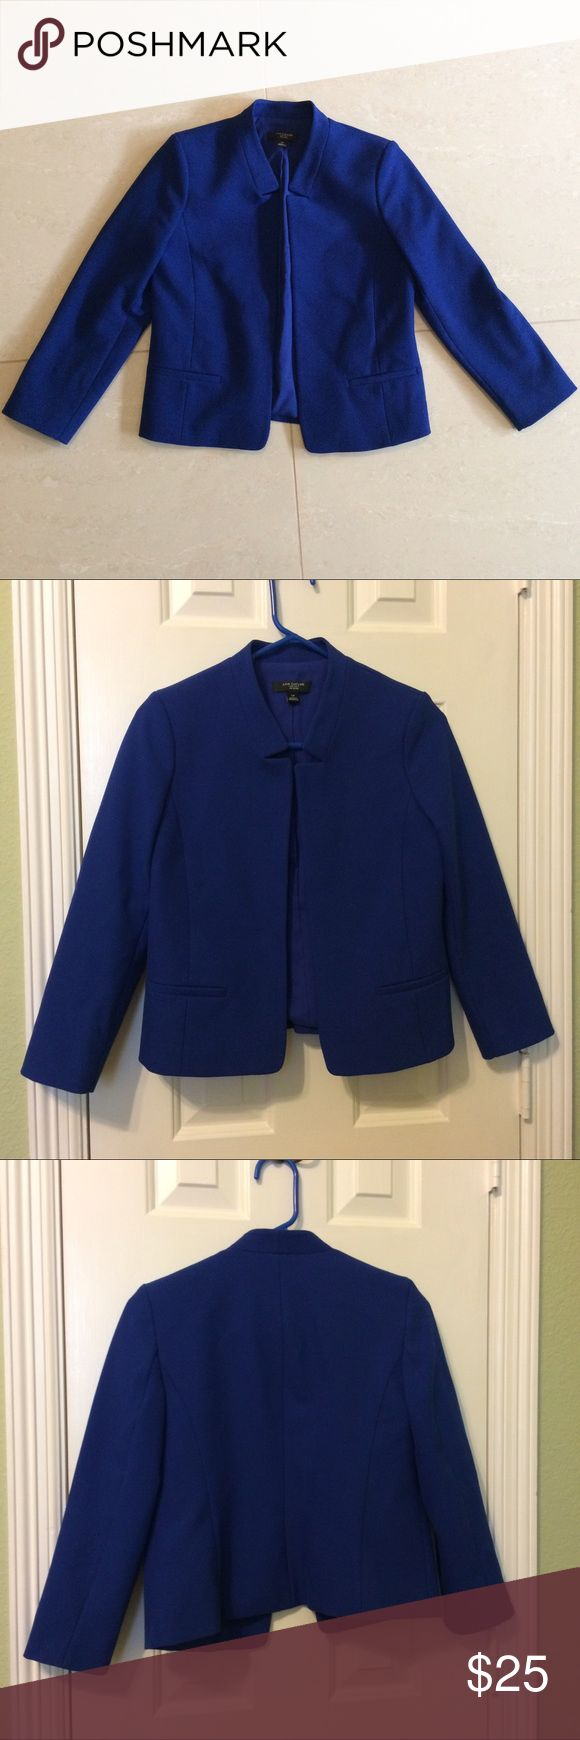 ANN TAYLOR royal blue blazer Petite blazer from Ann Taylor. Great quality, work appropriate, and beautiful blue color. In perfect condition!! Ann Taylor Jackets & Coats Blazers